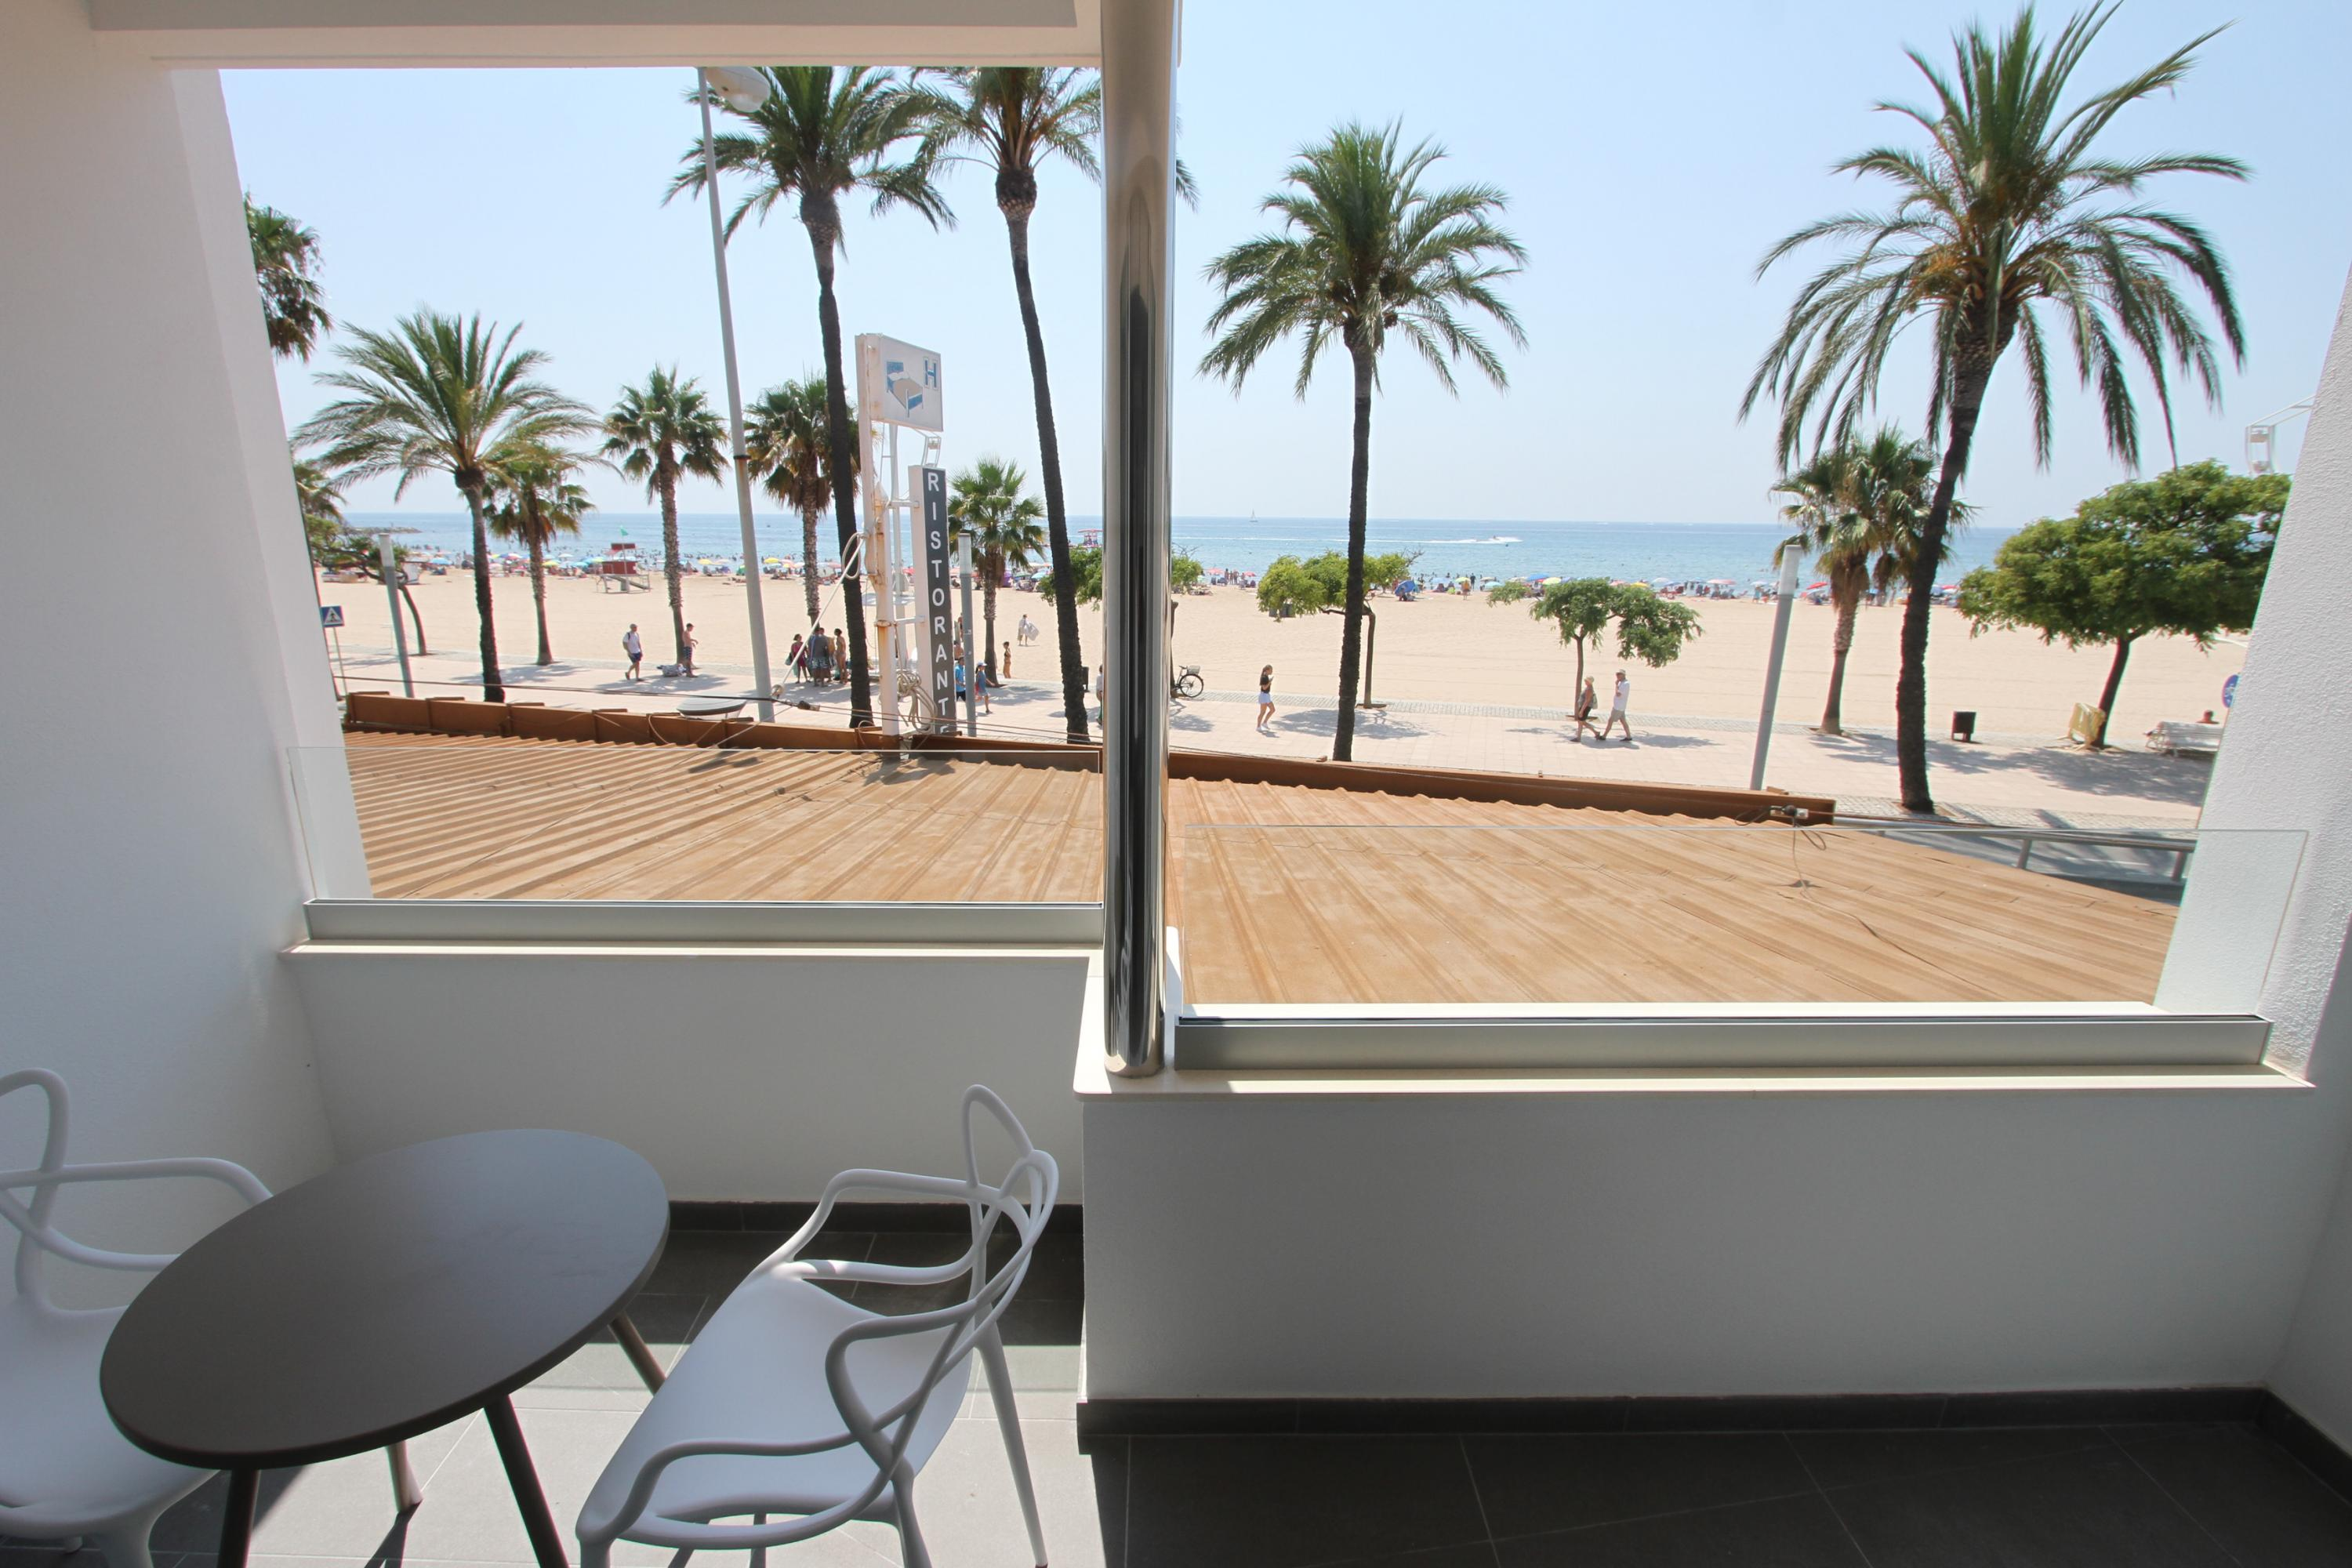 CBR-002 Roesmar 2H Seaview - 002 Apartament playa Cambrils